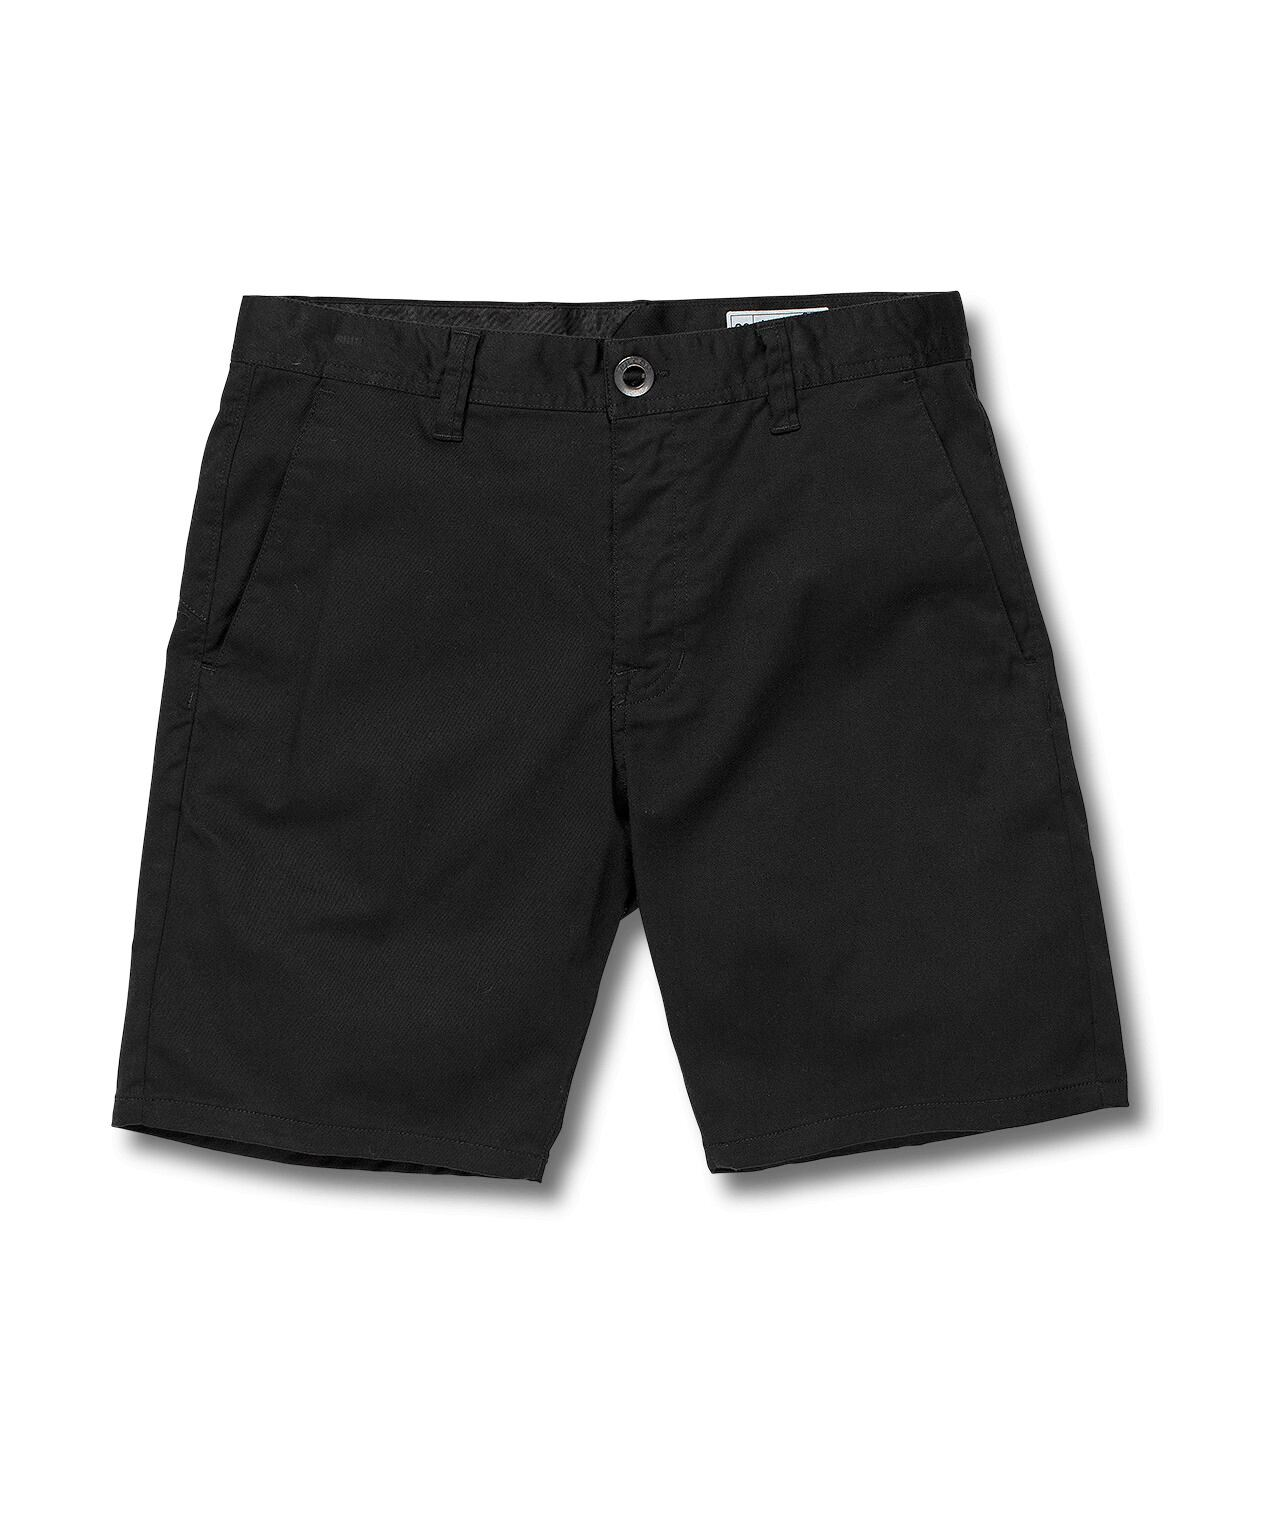 volcom shorts with side pocket